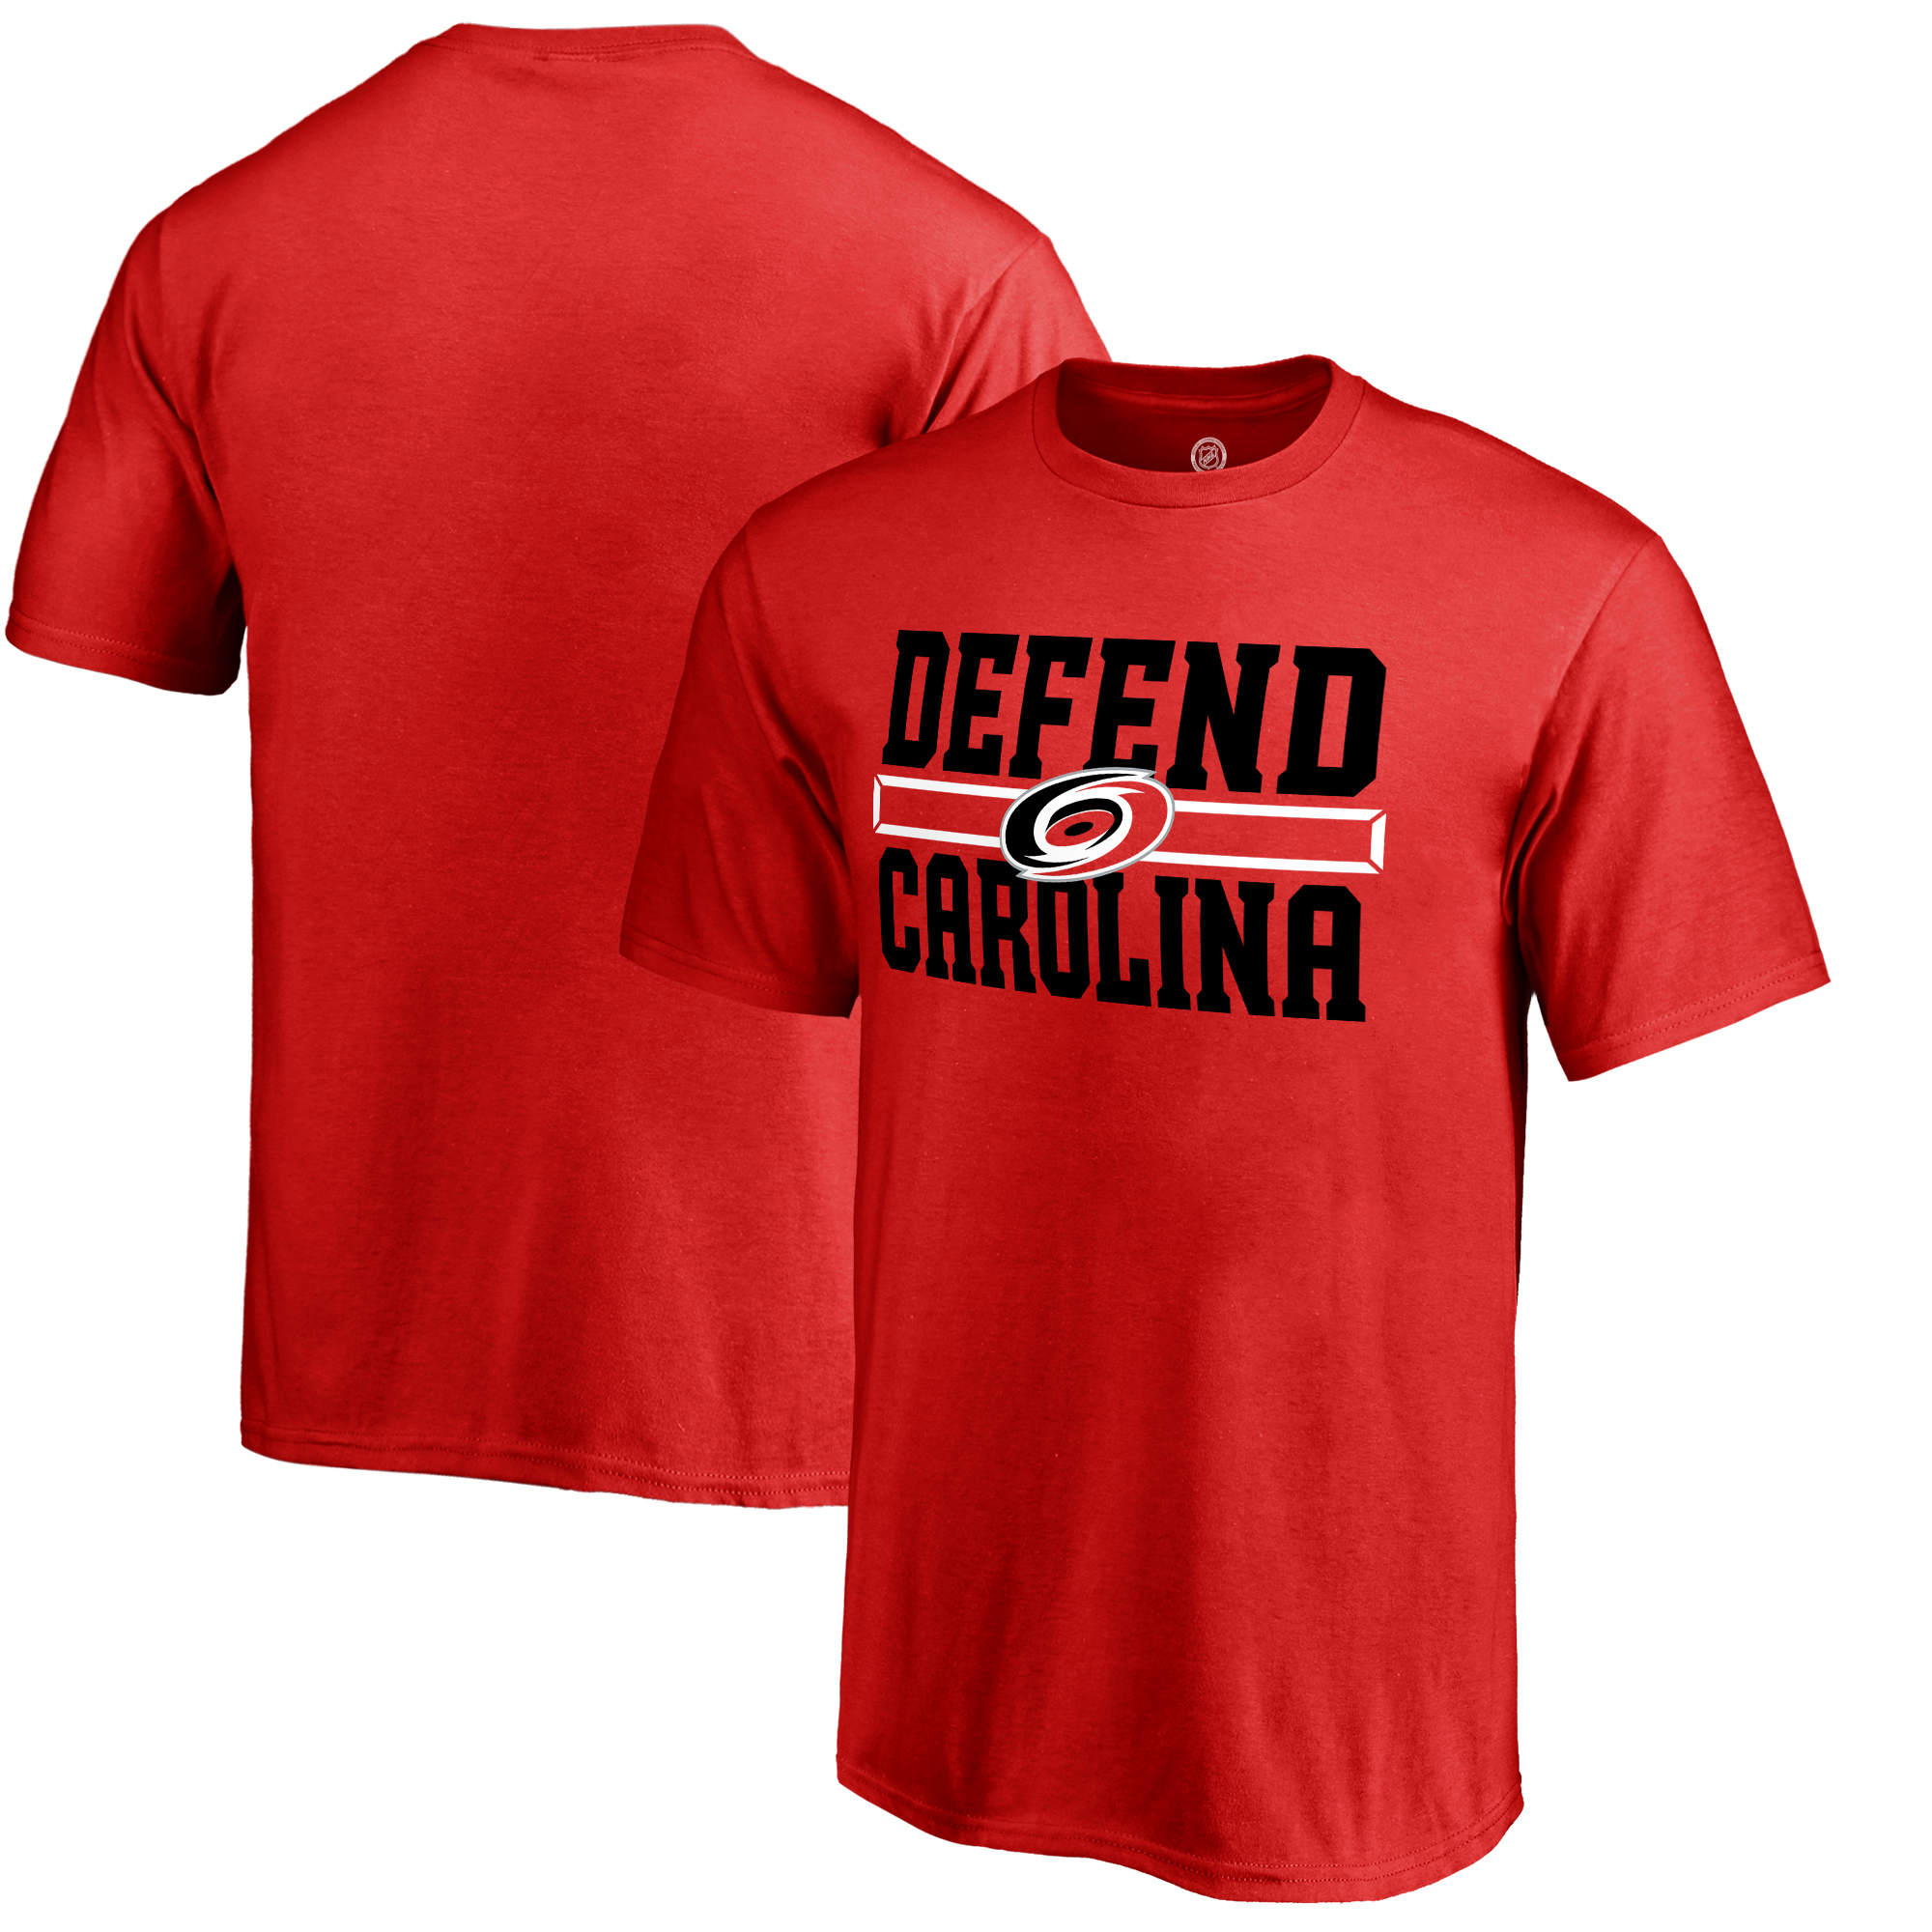 Carolina Hurricanes Fanatics Branded Youth Hometown Collection Defend T-Shirt - Red